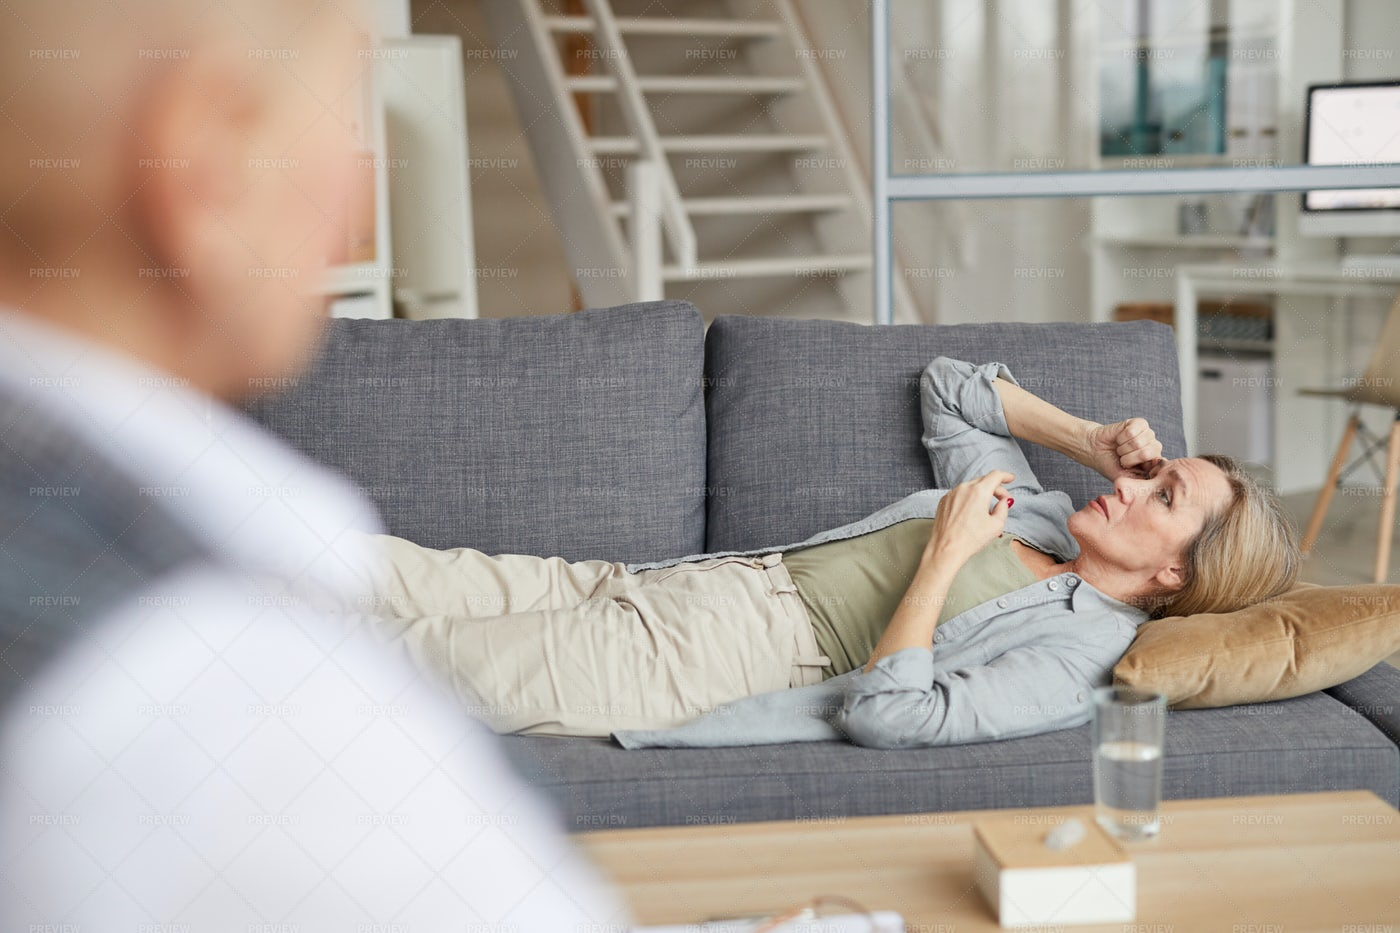 Mature Woman Luying On Couch In...: Stock Photos